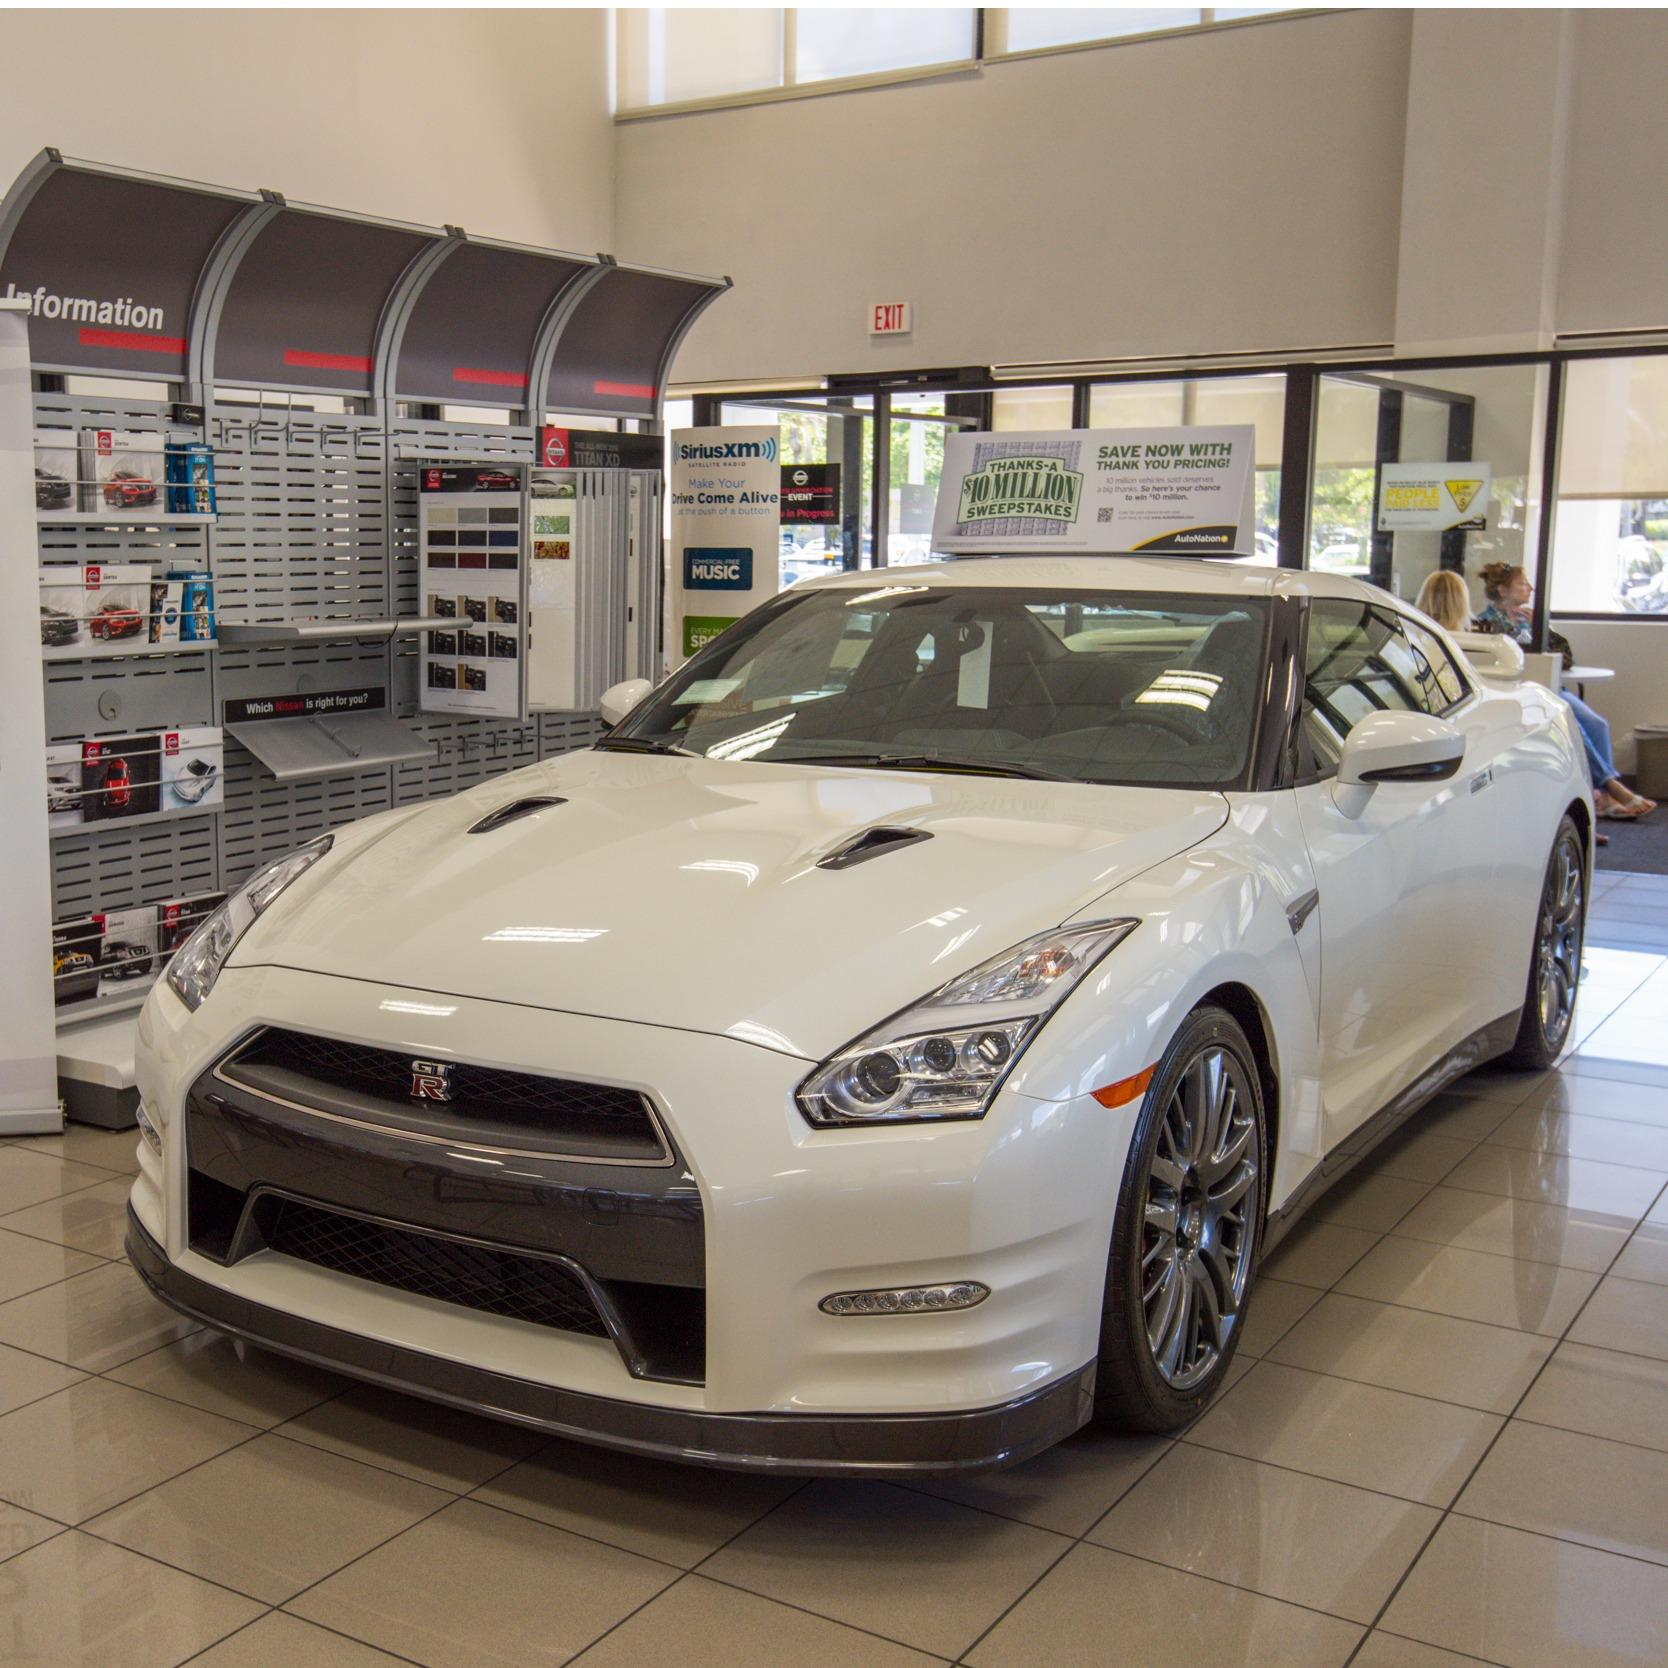 Nissan Car Dealerships Near Me: AutoNation Nissan Pembroke Pines Coupons Near Me In